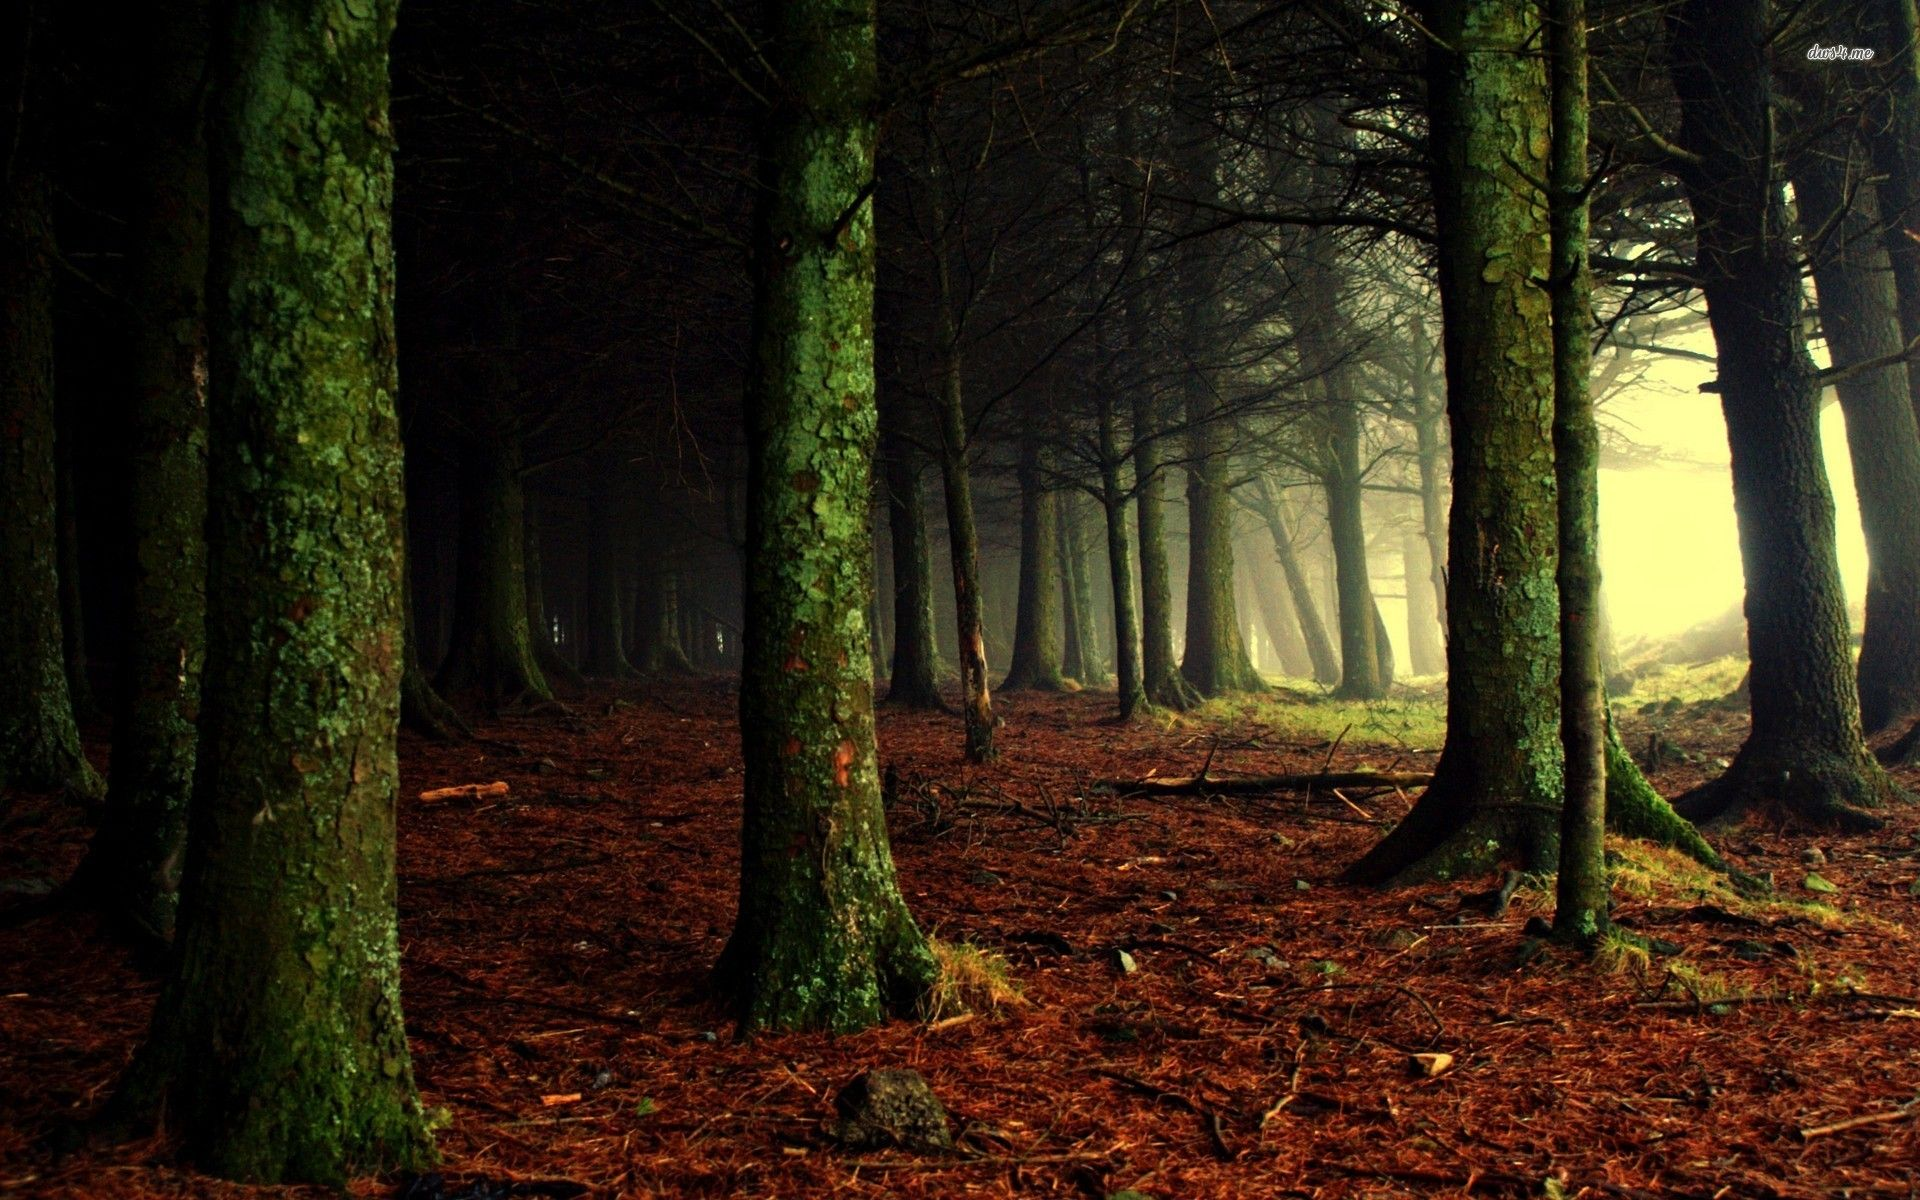 dark woods nature hd desktop wallpaper tree wallpaper forest wallpaper nature no